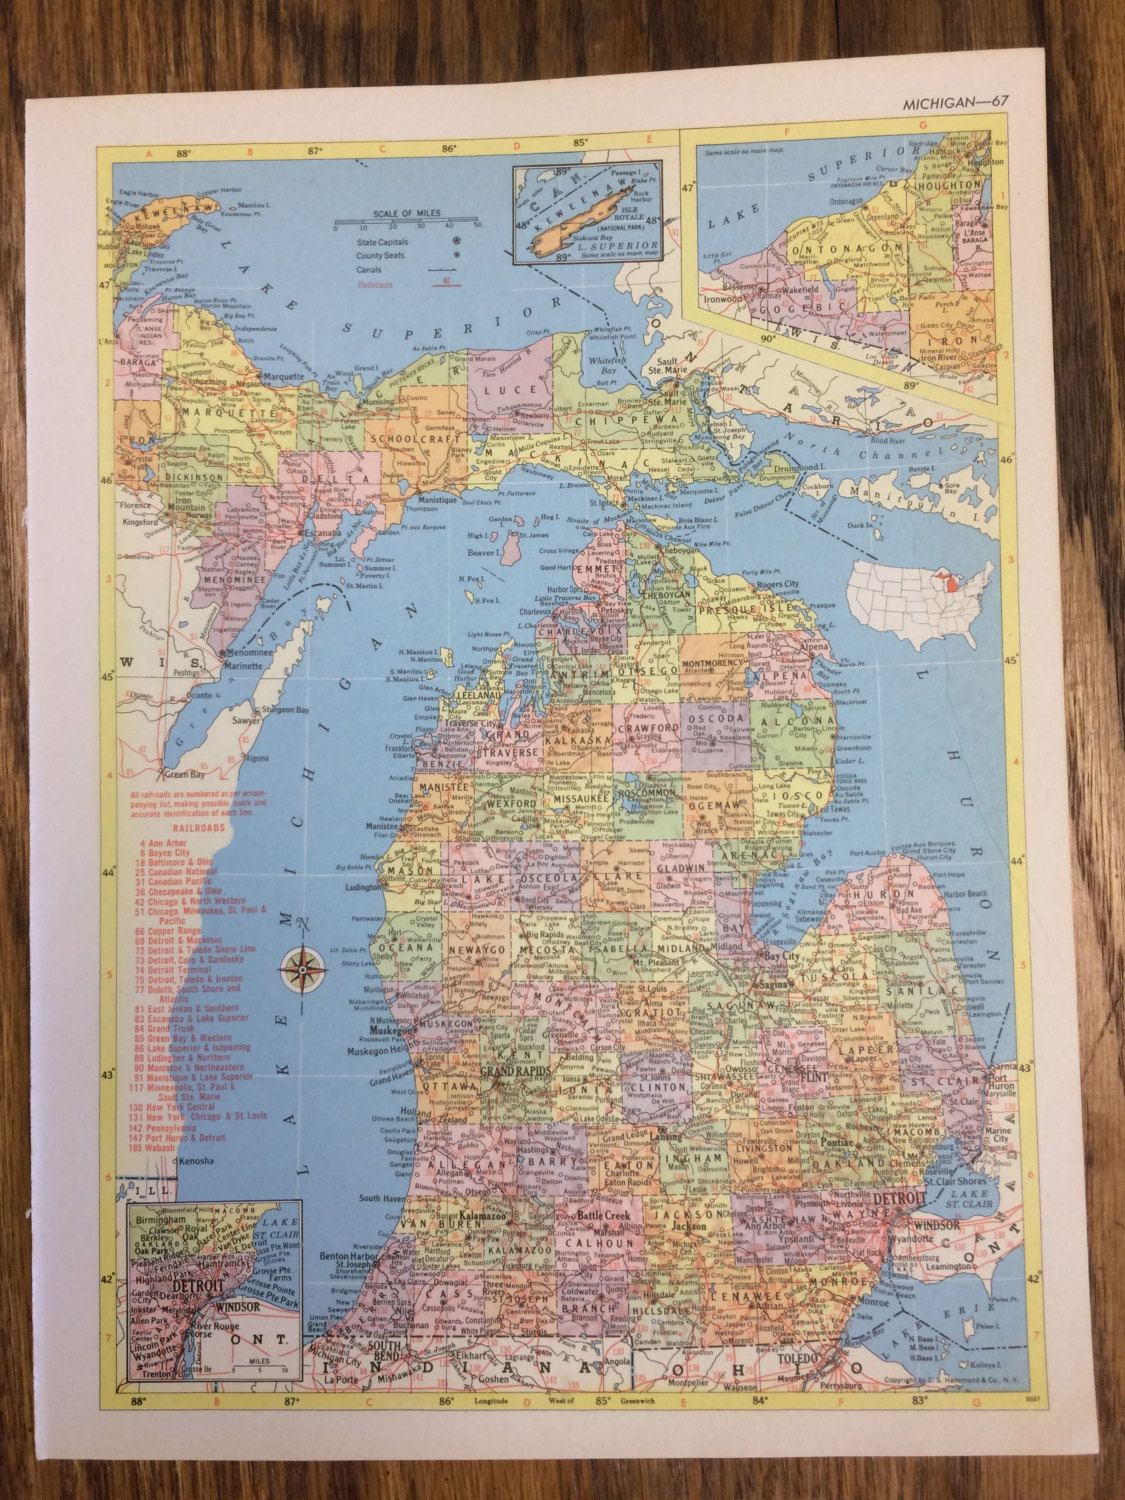 1955 michigan or minnesota large map hammonds new supreme world 1955 michigan or minnesota large map hammonds new supreme world atlas vintage by passinthrutime gumiabroncs Images